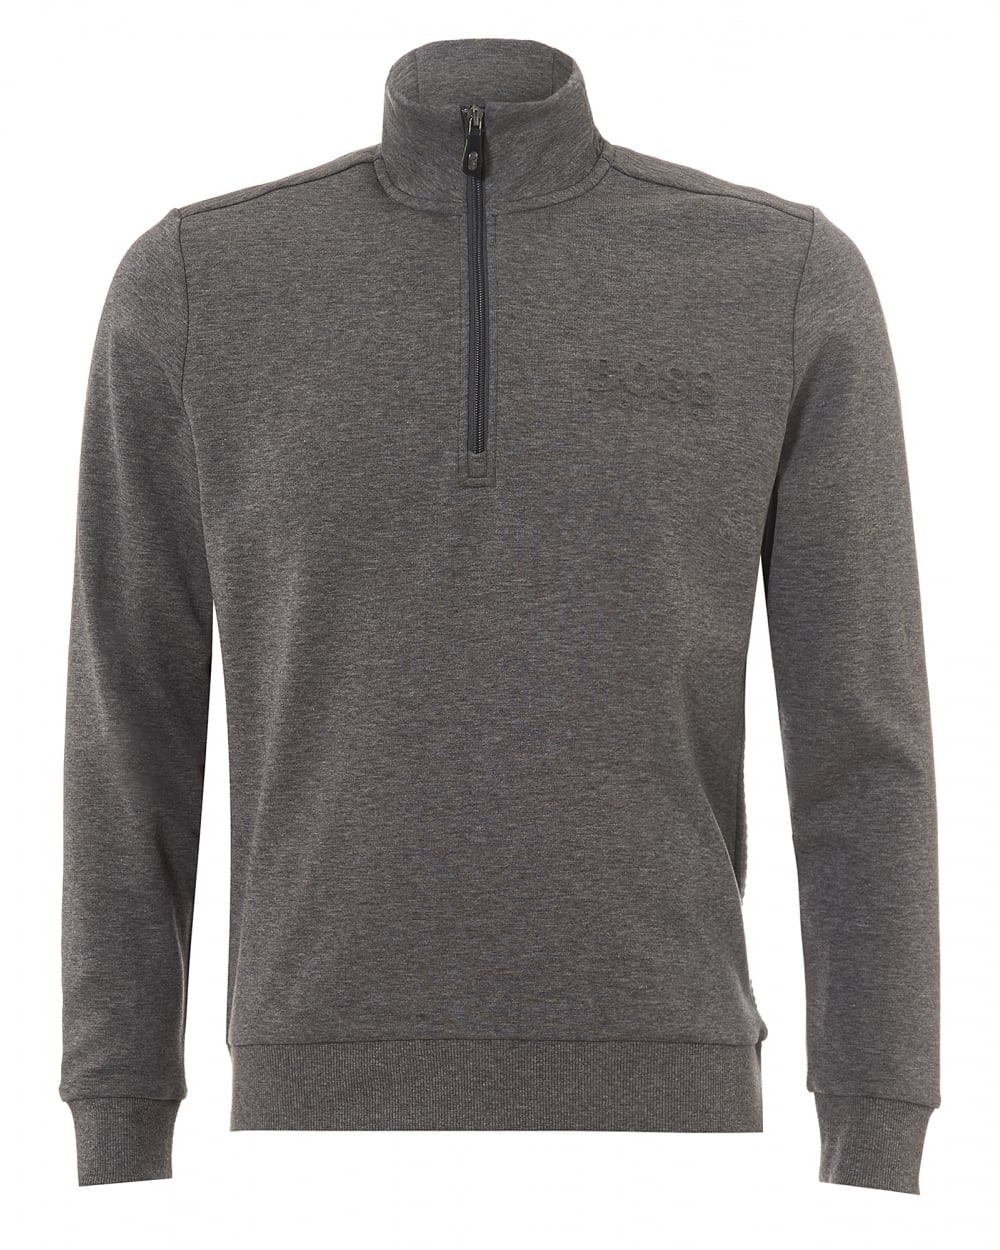 a2afda242 Hugo Boss Green Mens Sweat Track Top, Quarter Zip Mid Grey Sweatshirt